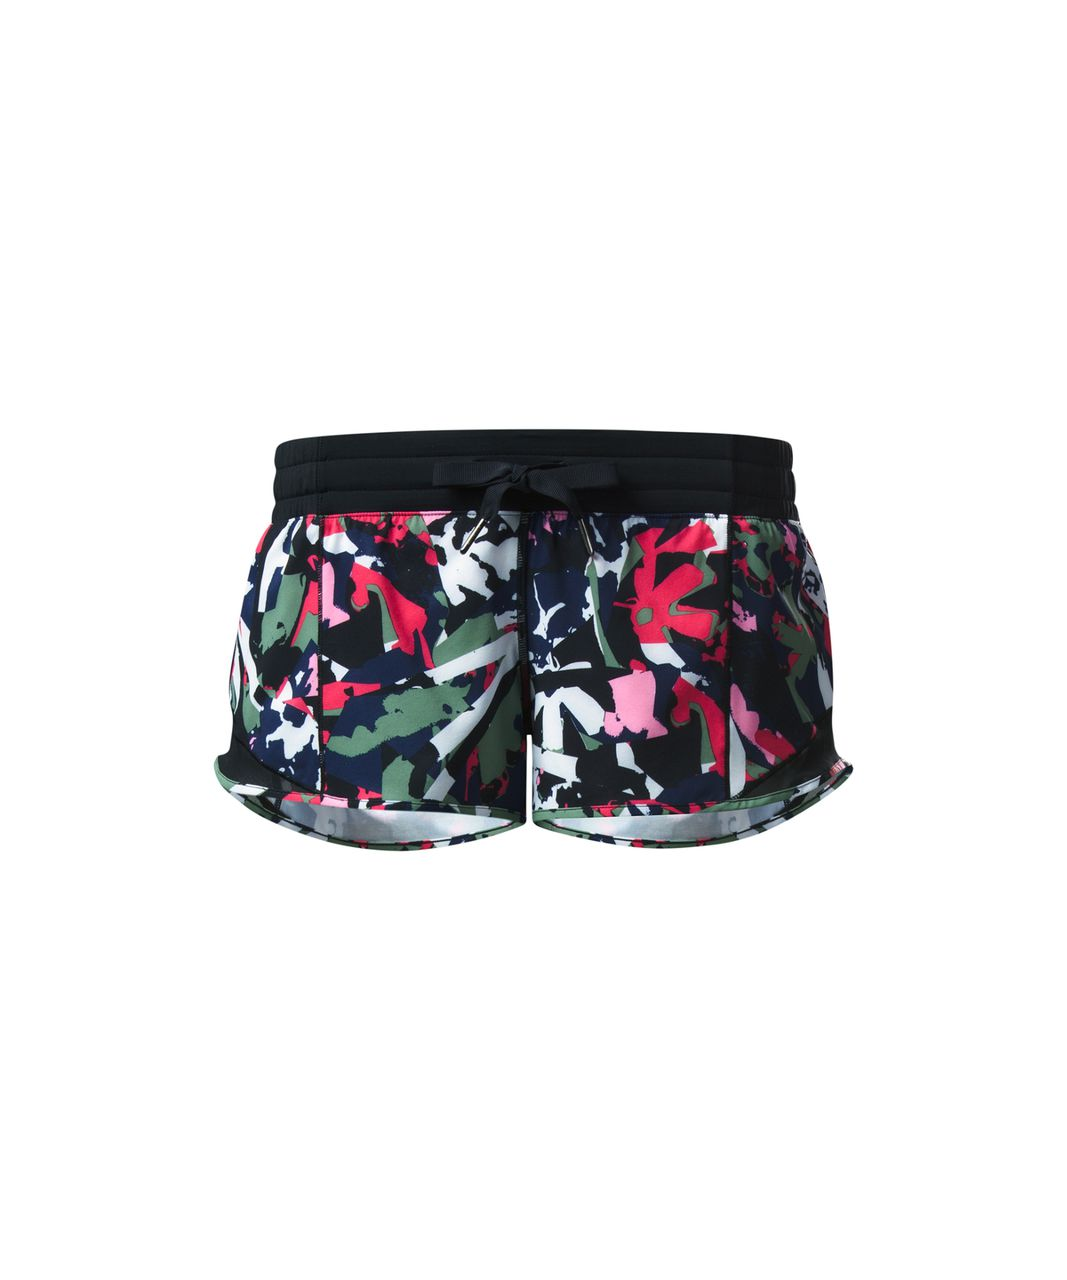 Lululemon Hotty Hot Short - Pop Cut Boom Juice Multi / Black